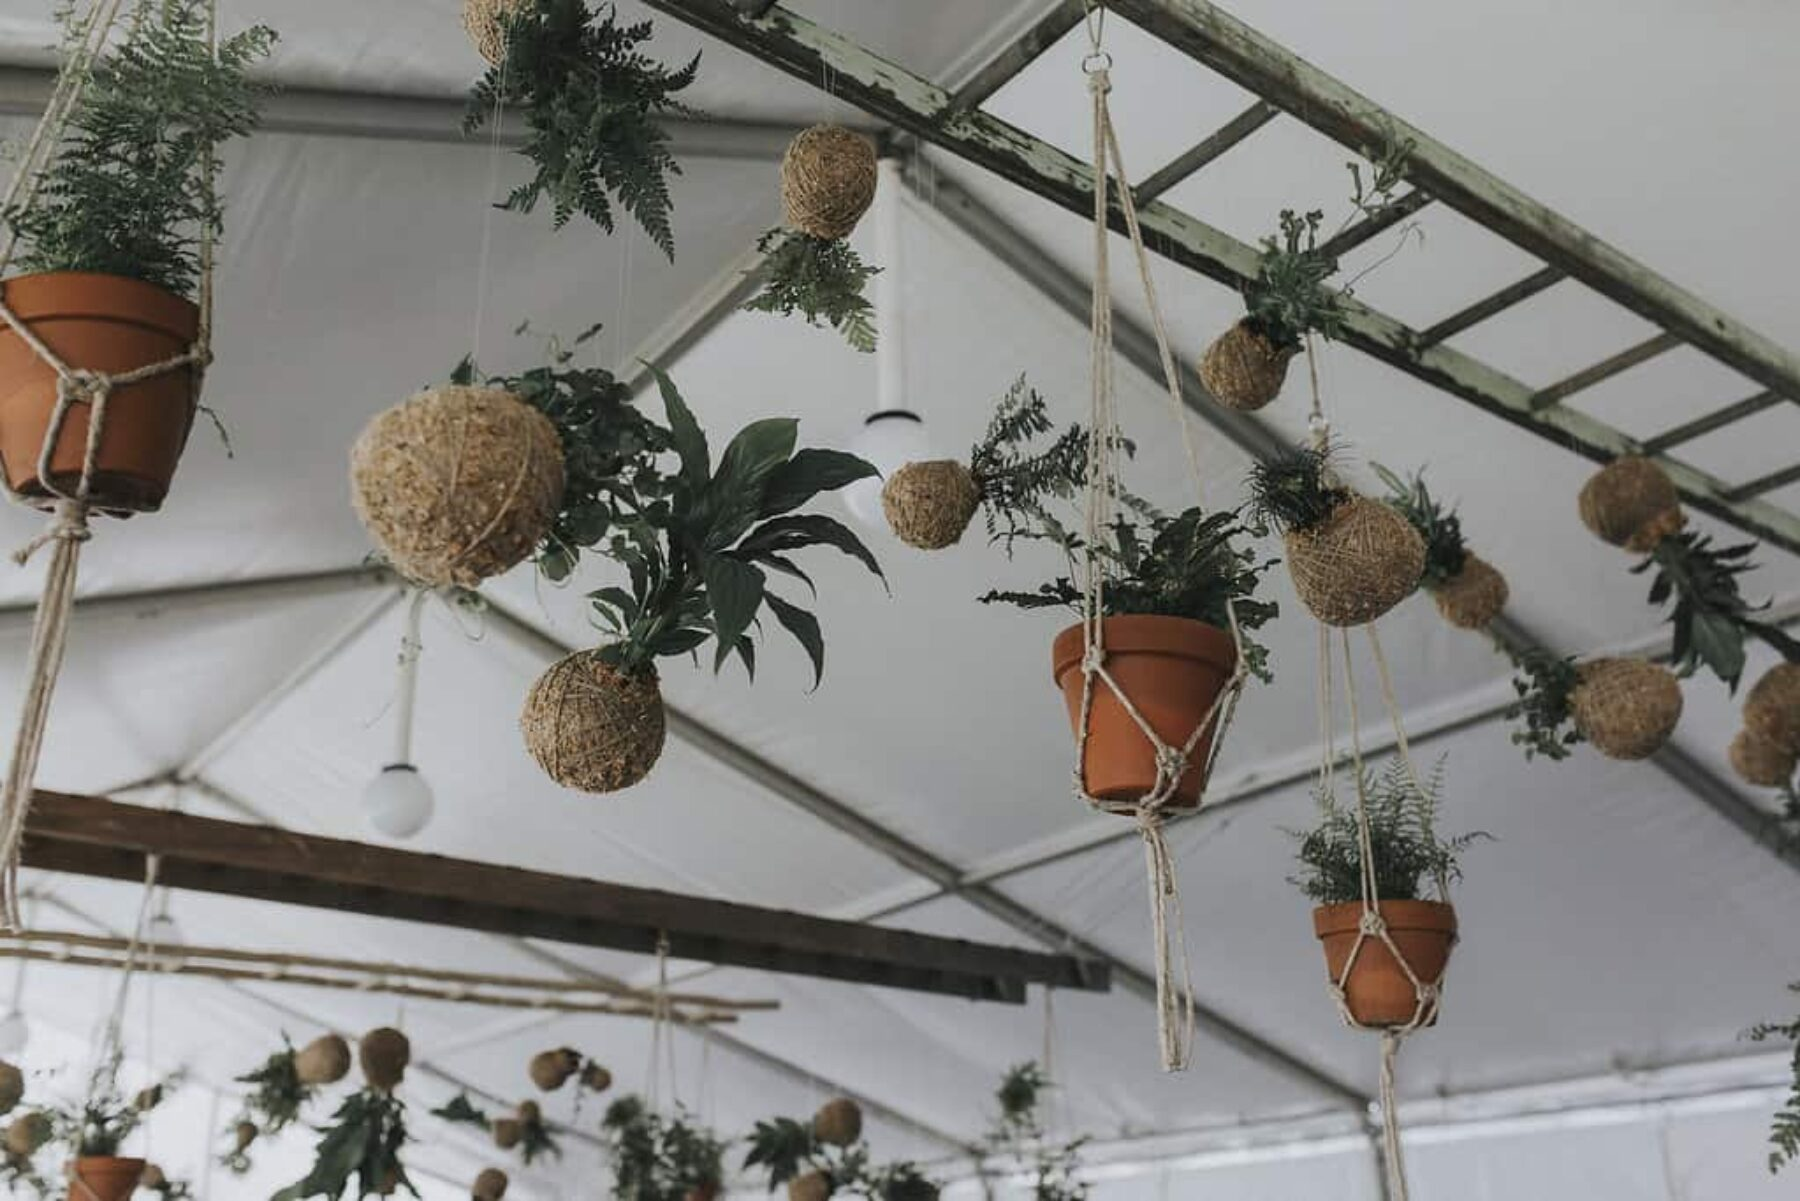 marquee wedding with hanging plants and kokedamas